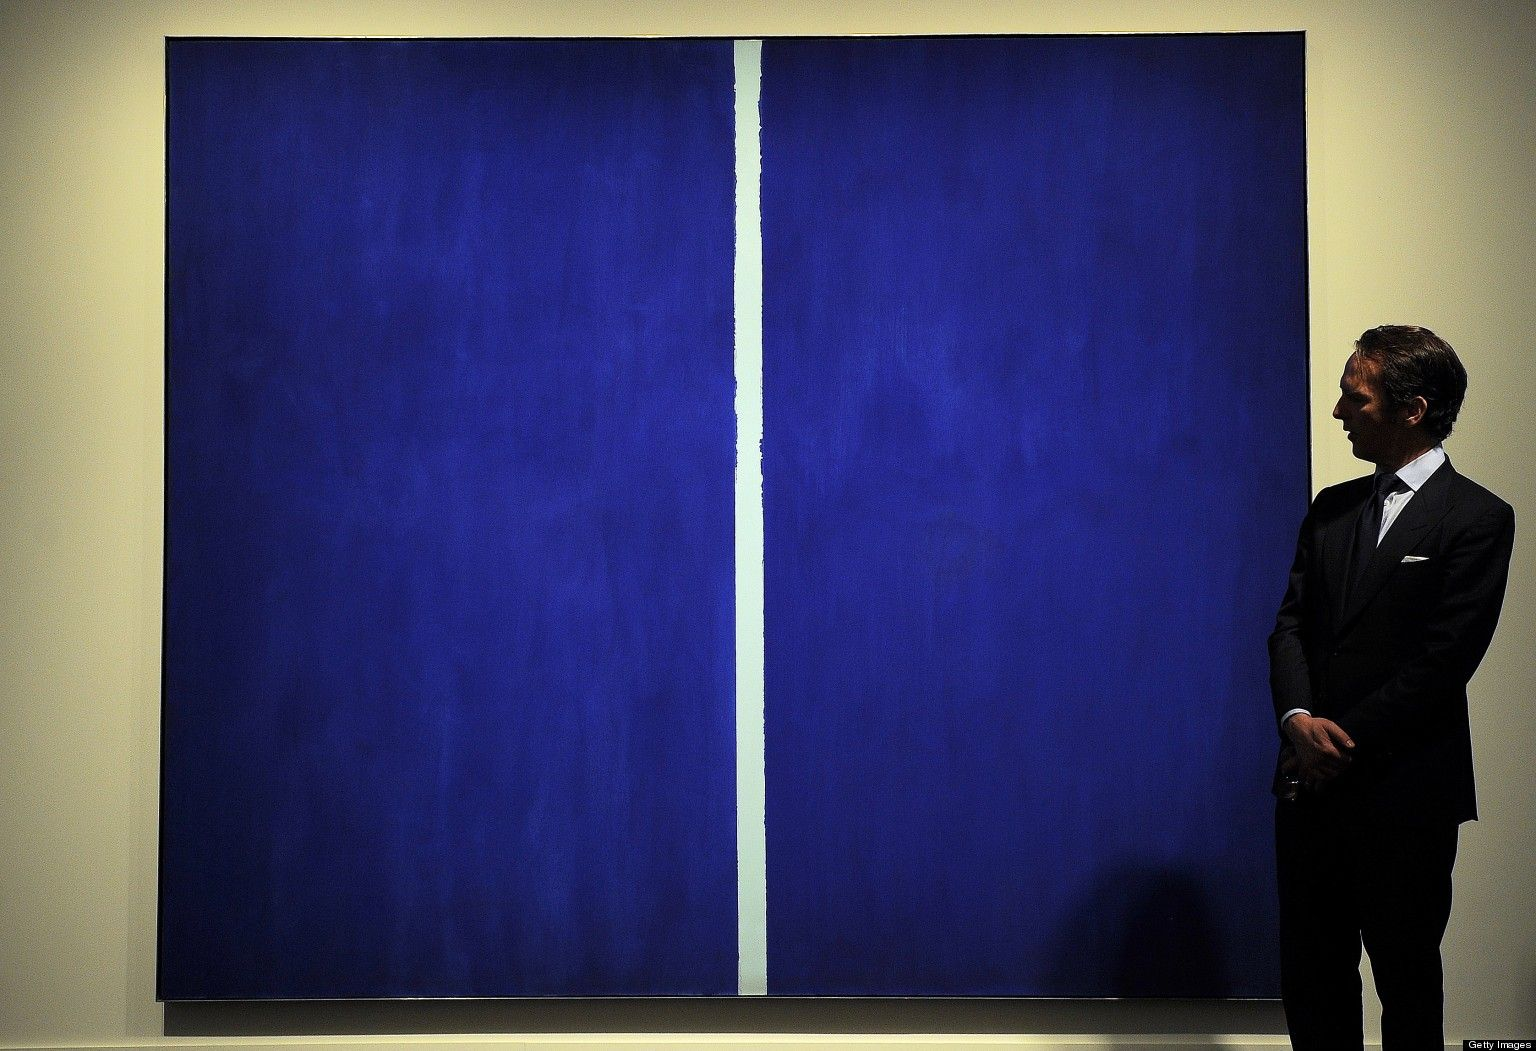 Onement VI by Barnett Newman sold for over $40 million